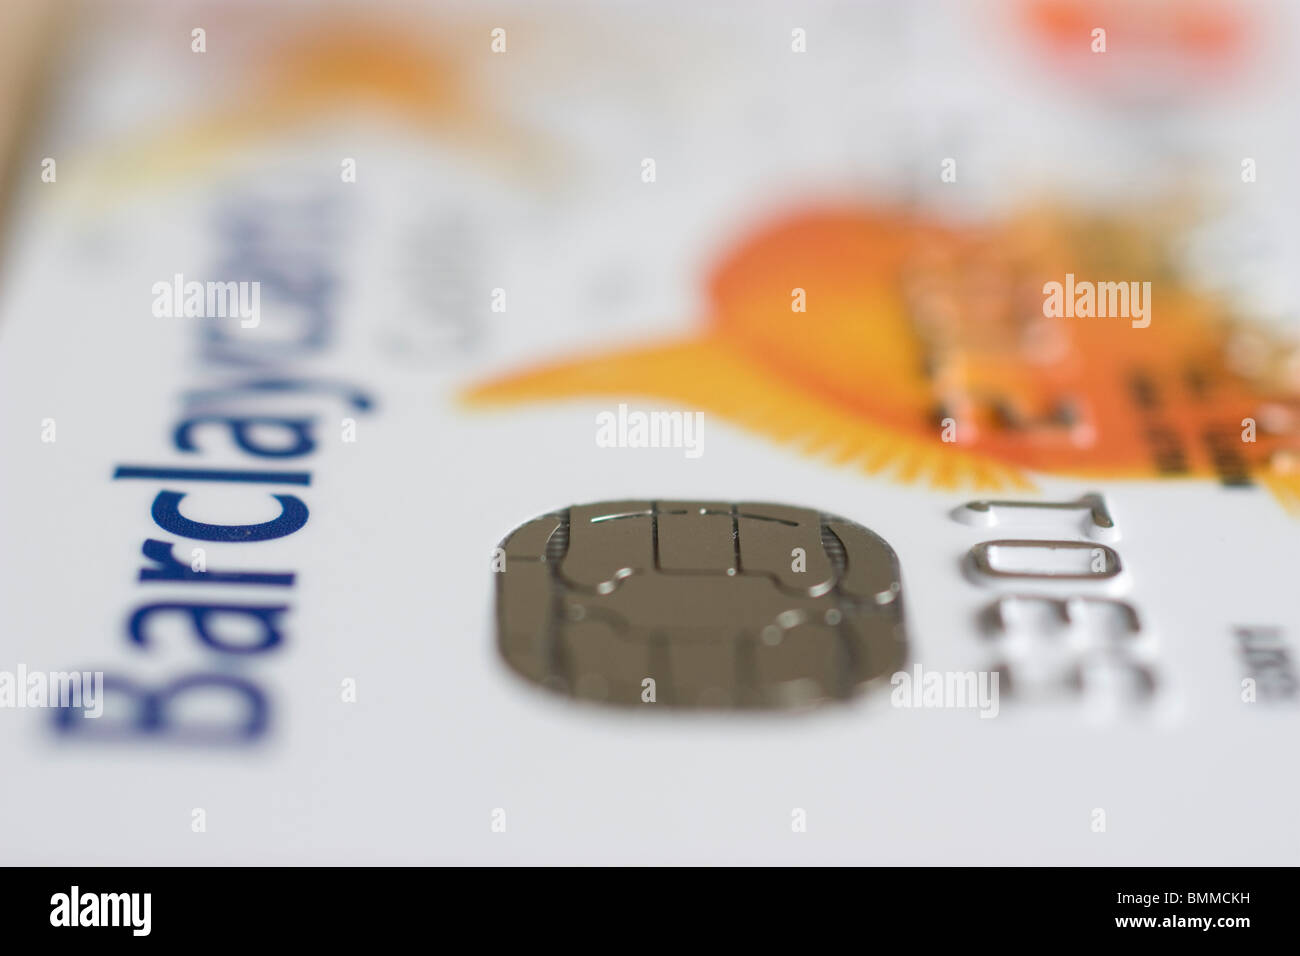 A smart card, chip card, or integrated circuit card ICC on goldfish barclaycard - Stock Image